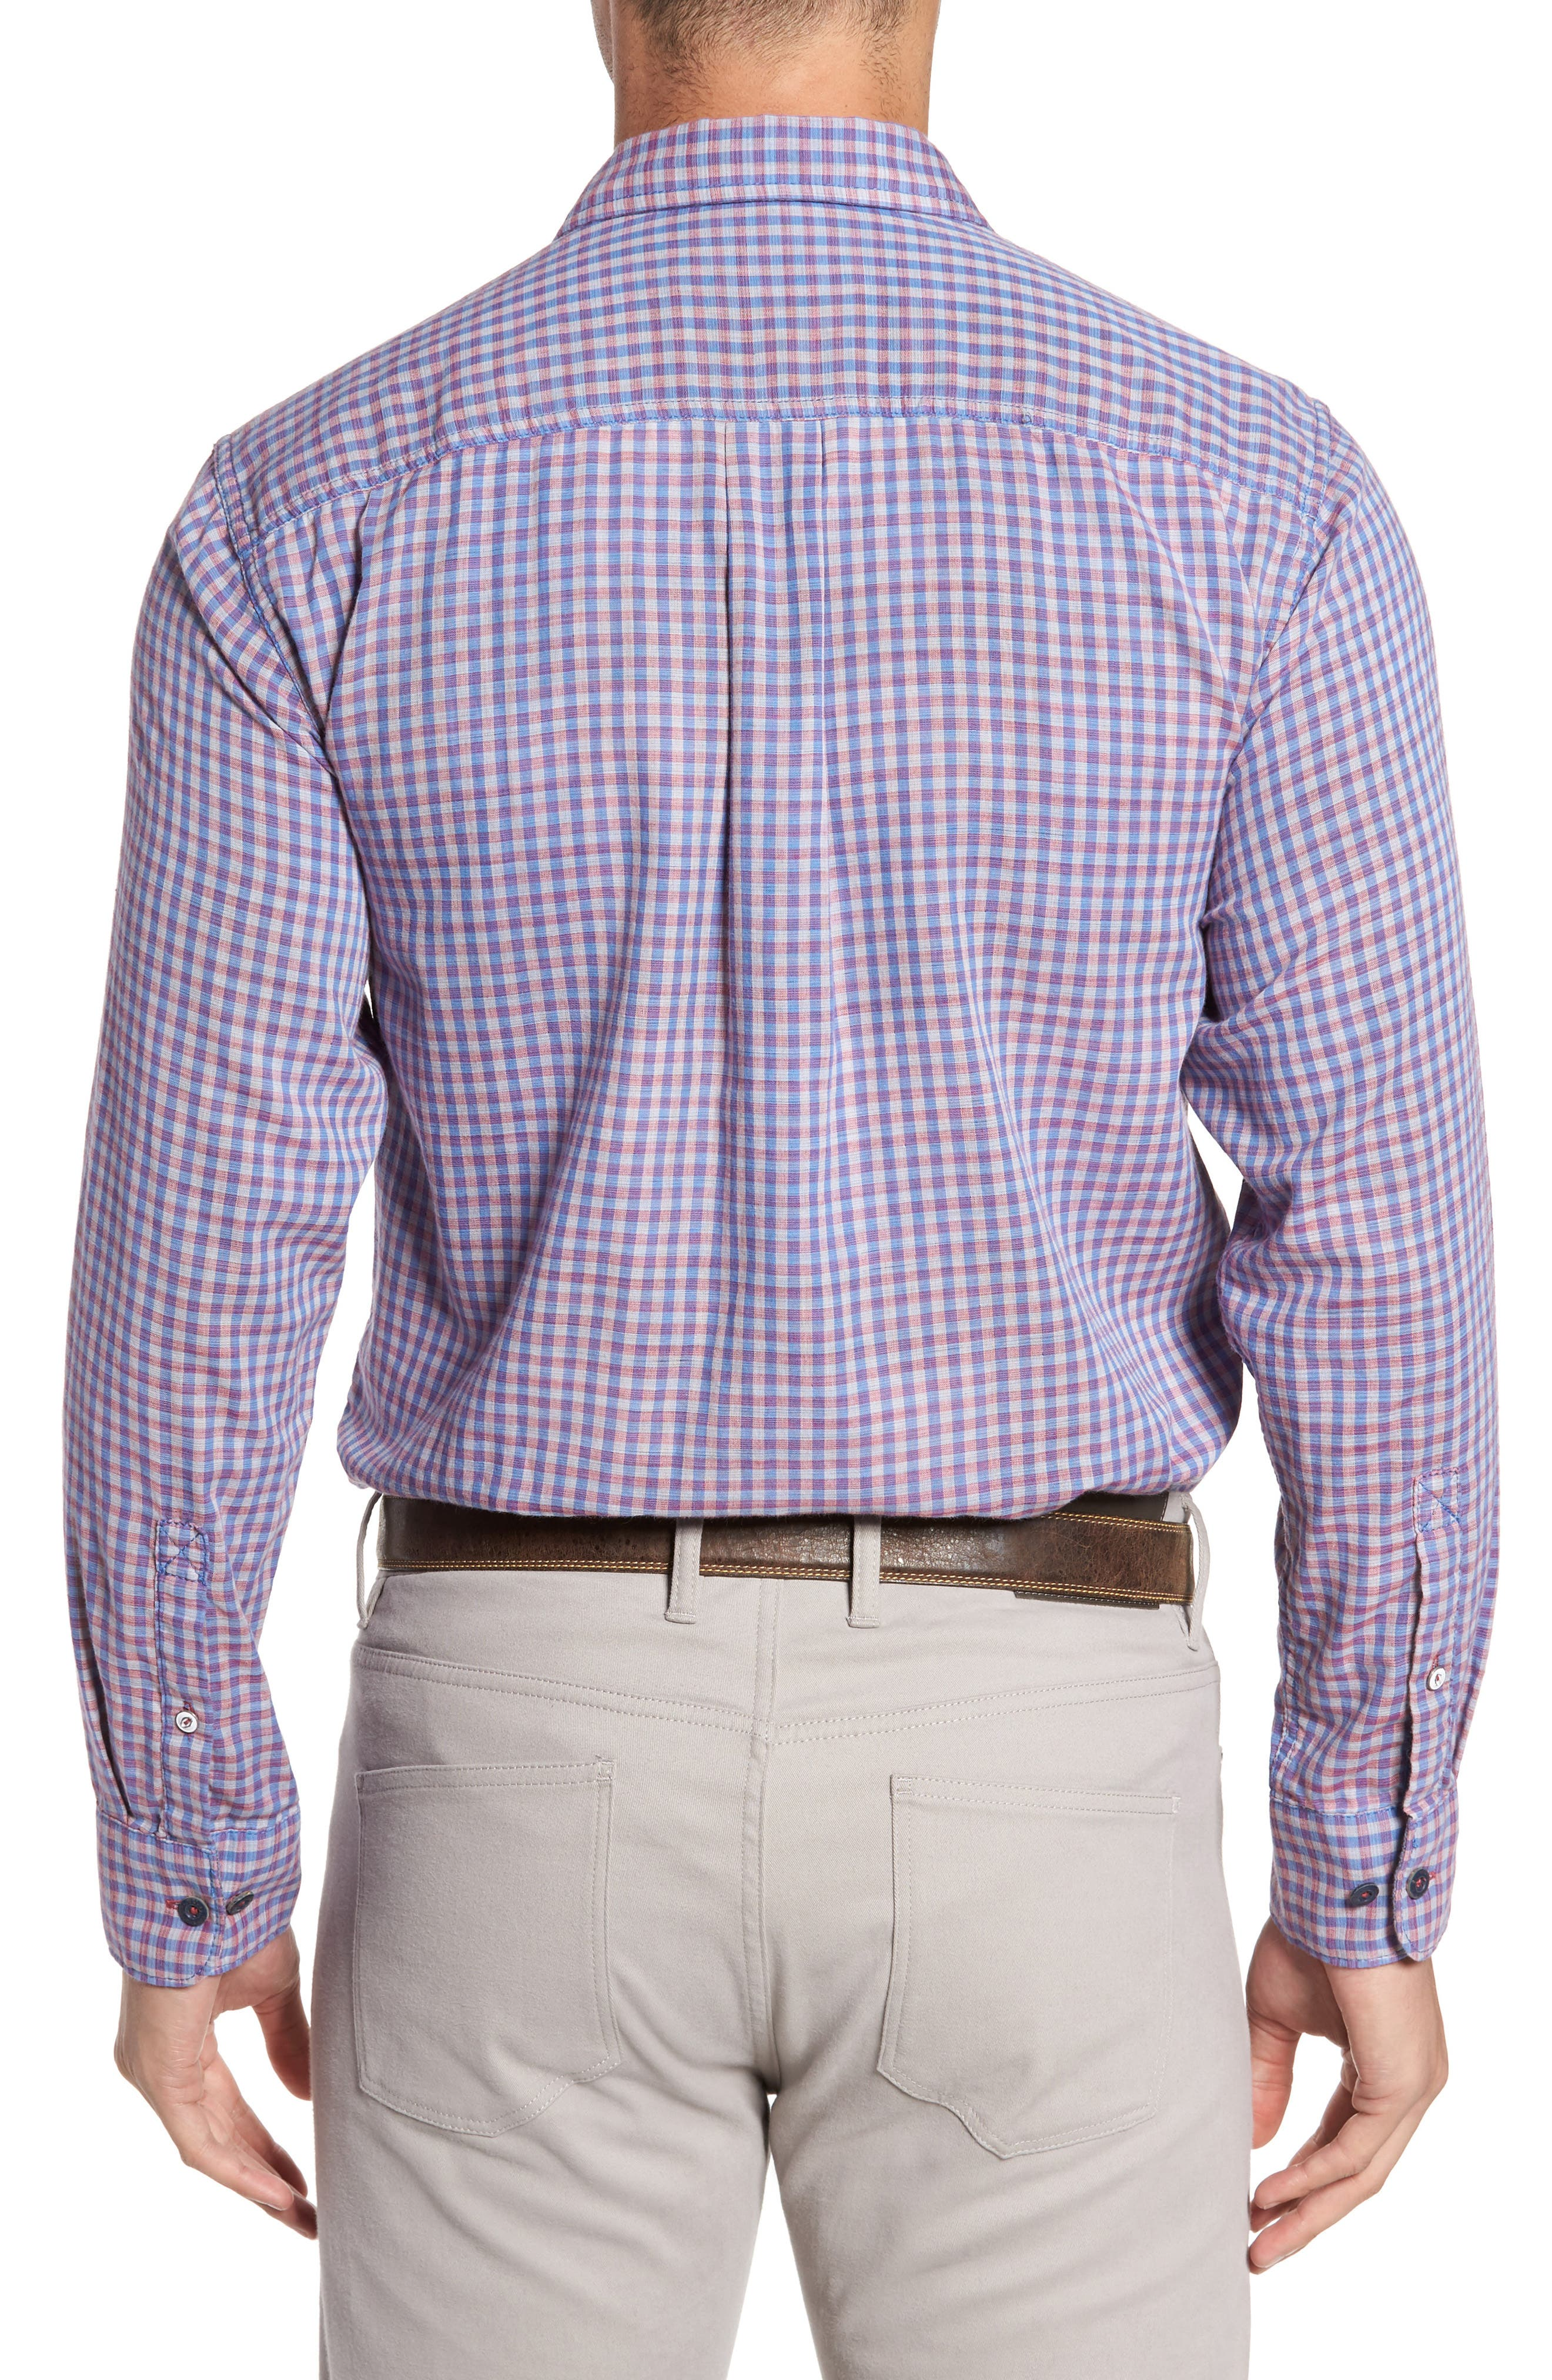 Alternate Image 2  - Tommy Bahama Dual Lux Gingham Sport Shirt